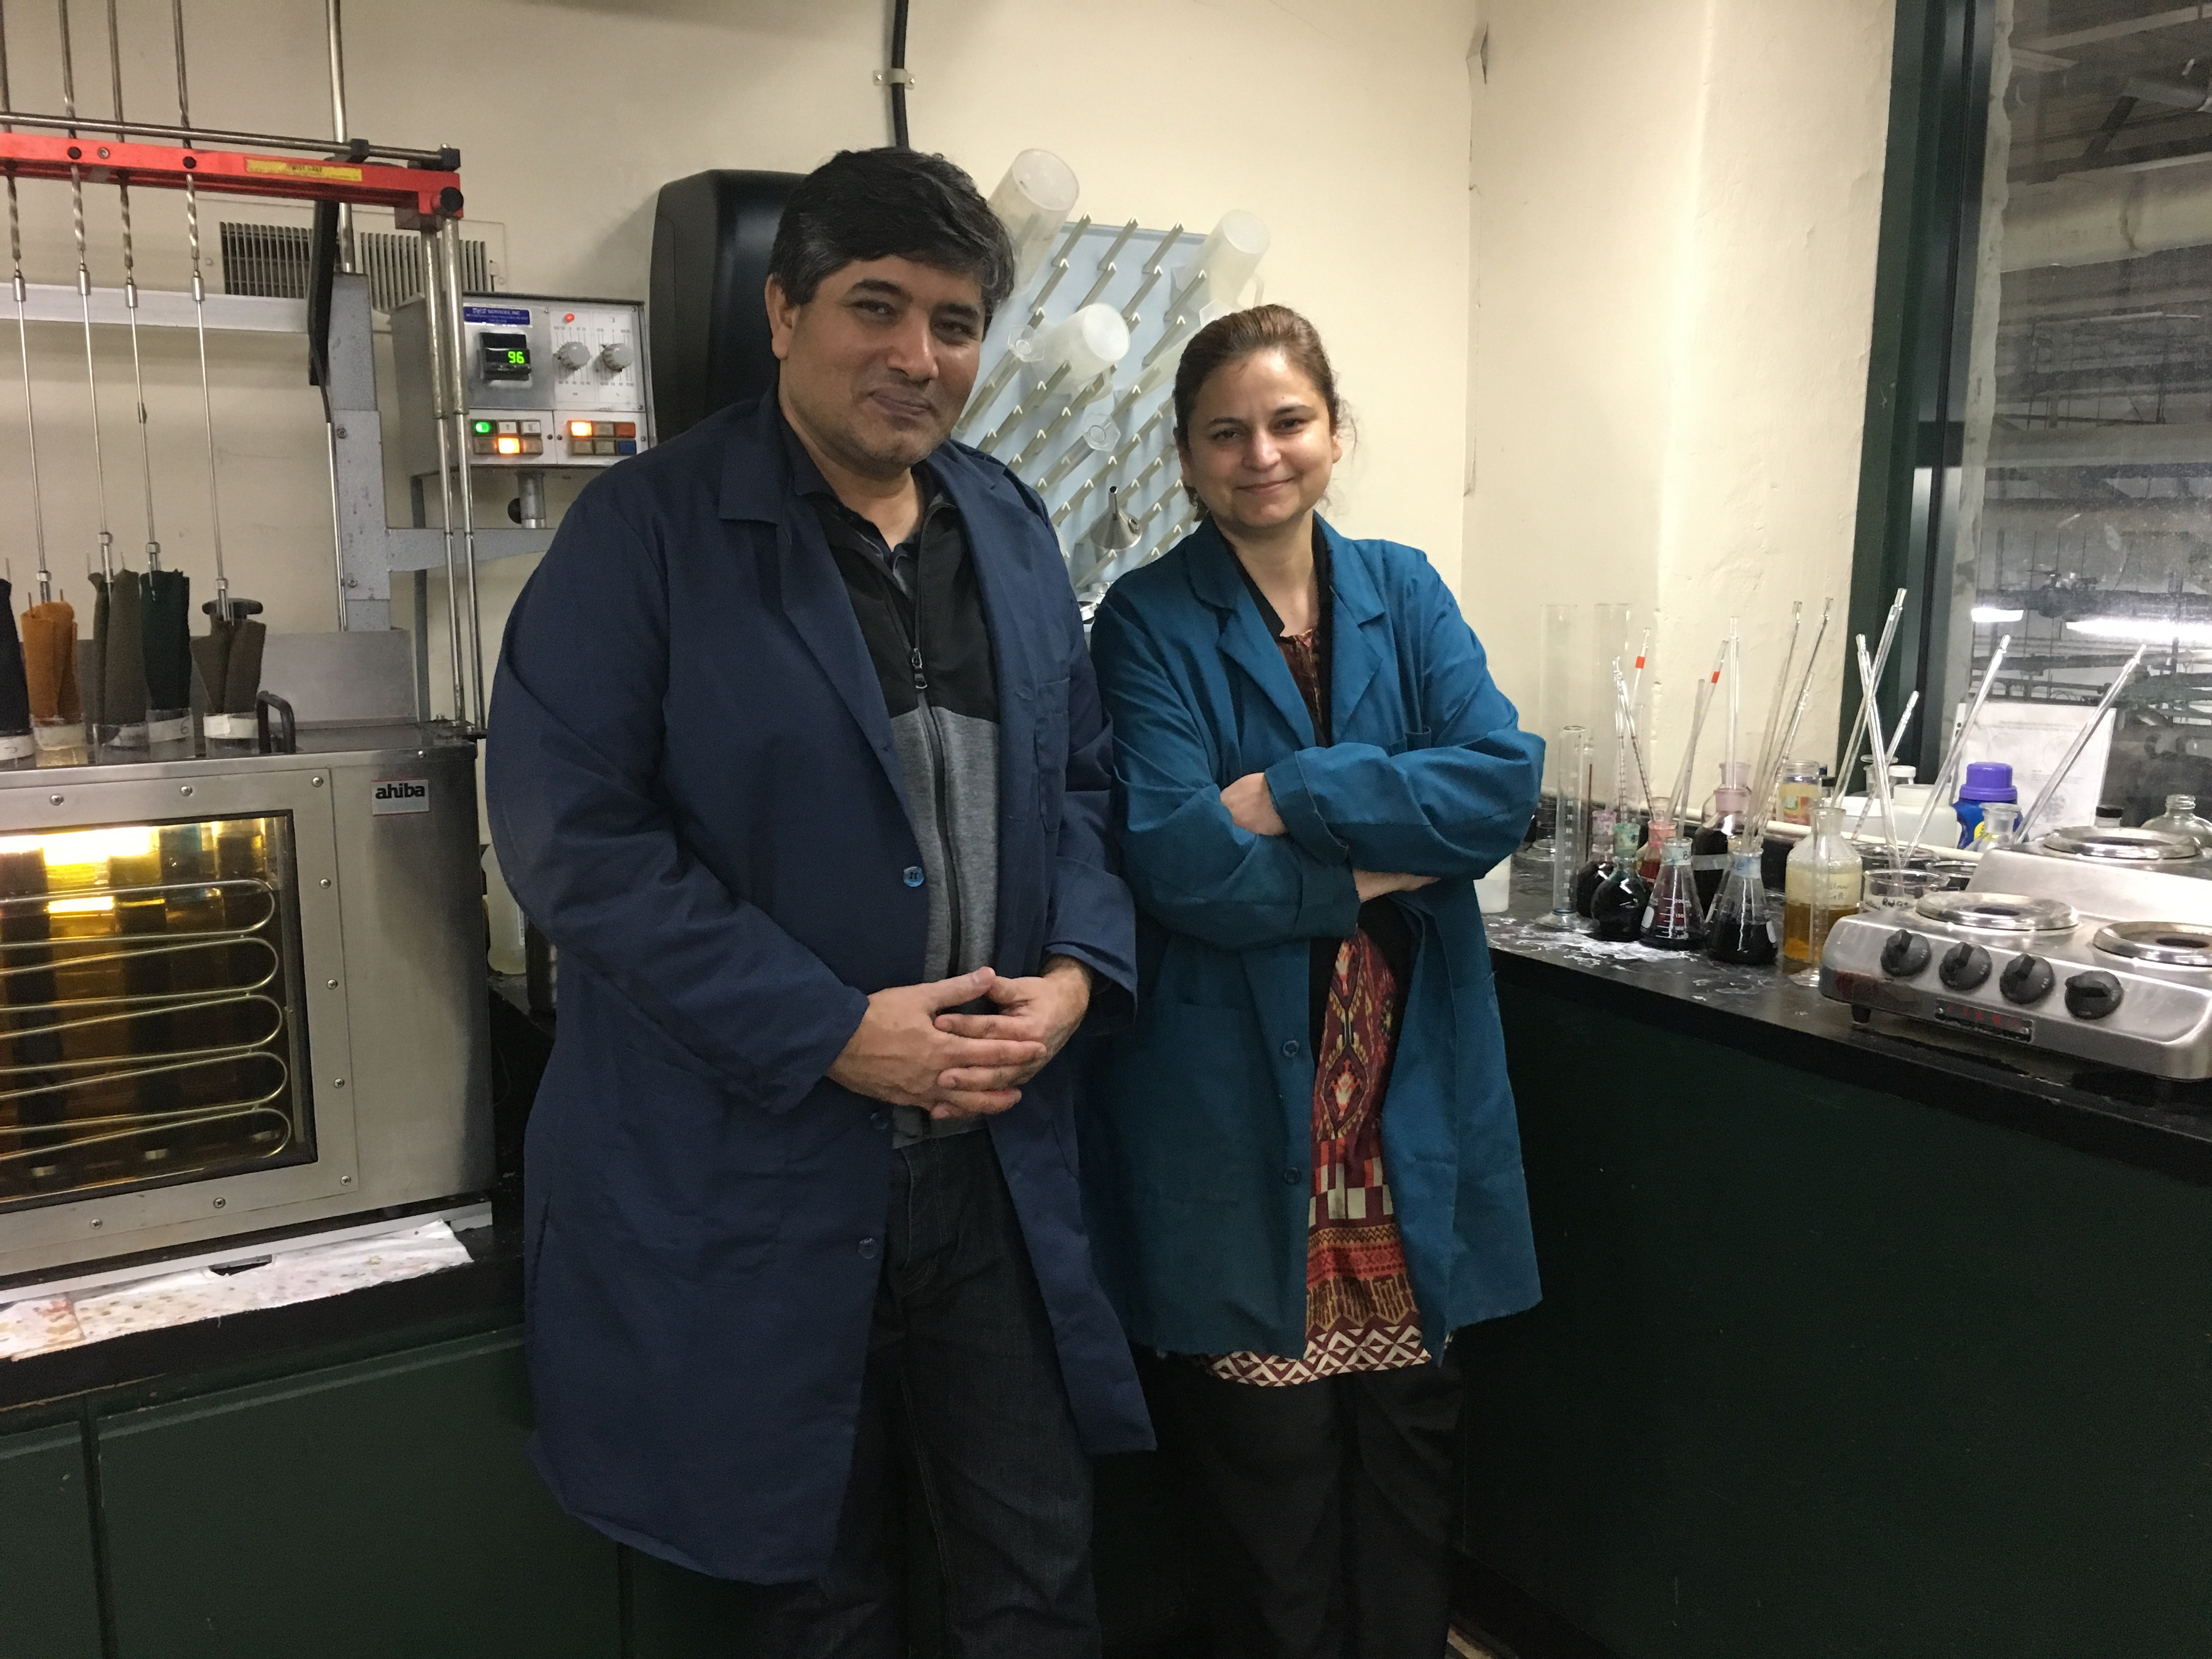 Muhammad Malik and Raana Jabeen, a husband and wife team at American Woolen Co. Photo courtesy of American Woolen Co.